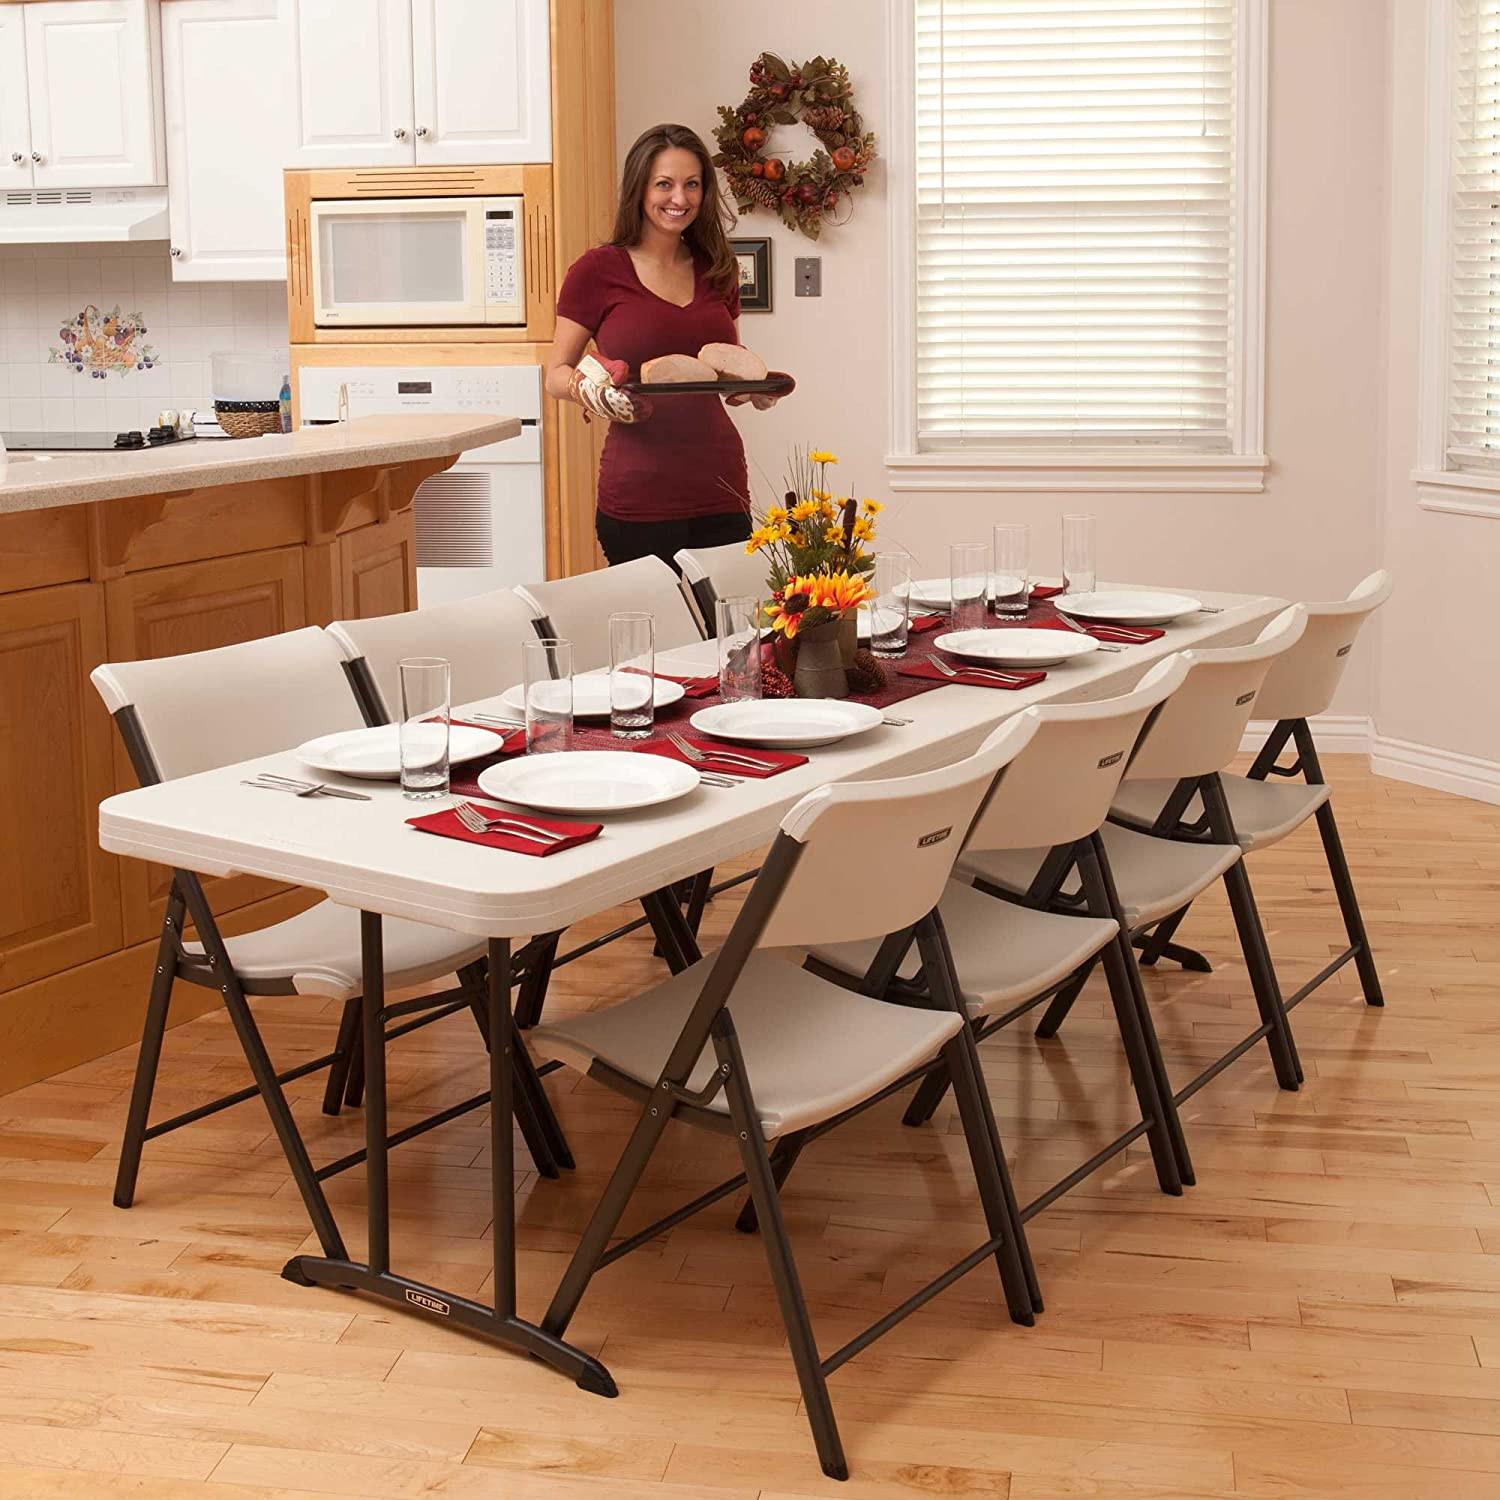 Lifetime Fold In Half Utility Table Almond 8 Foot Amazon